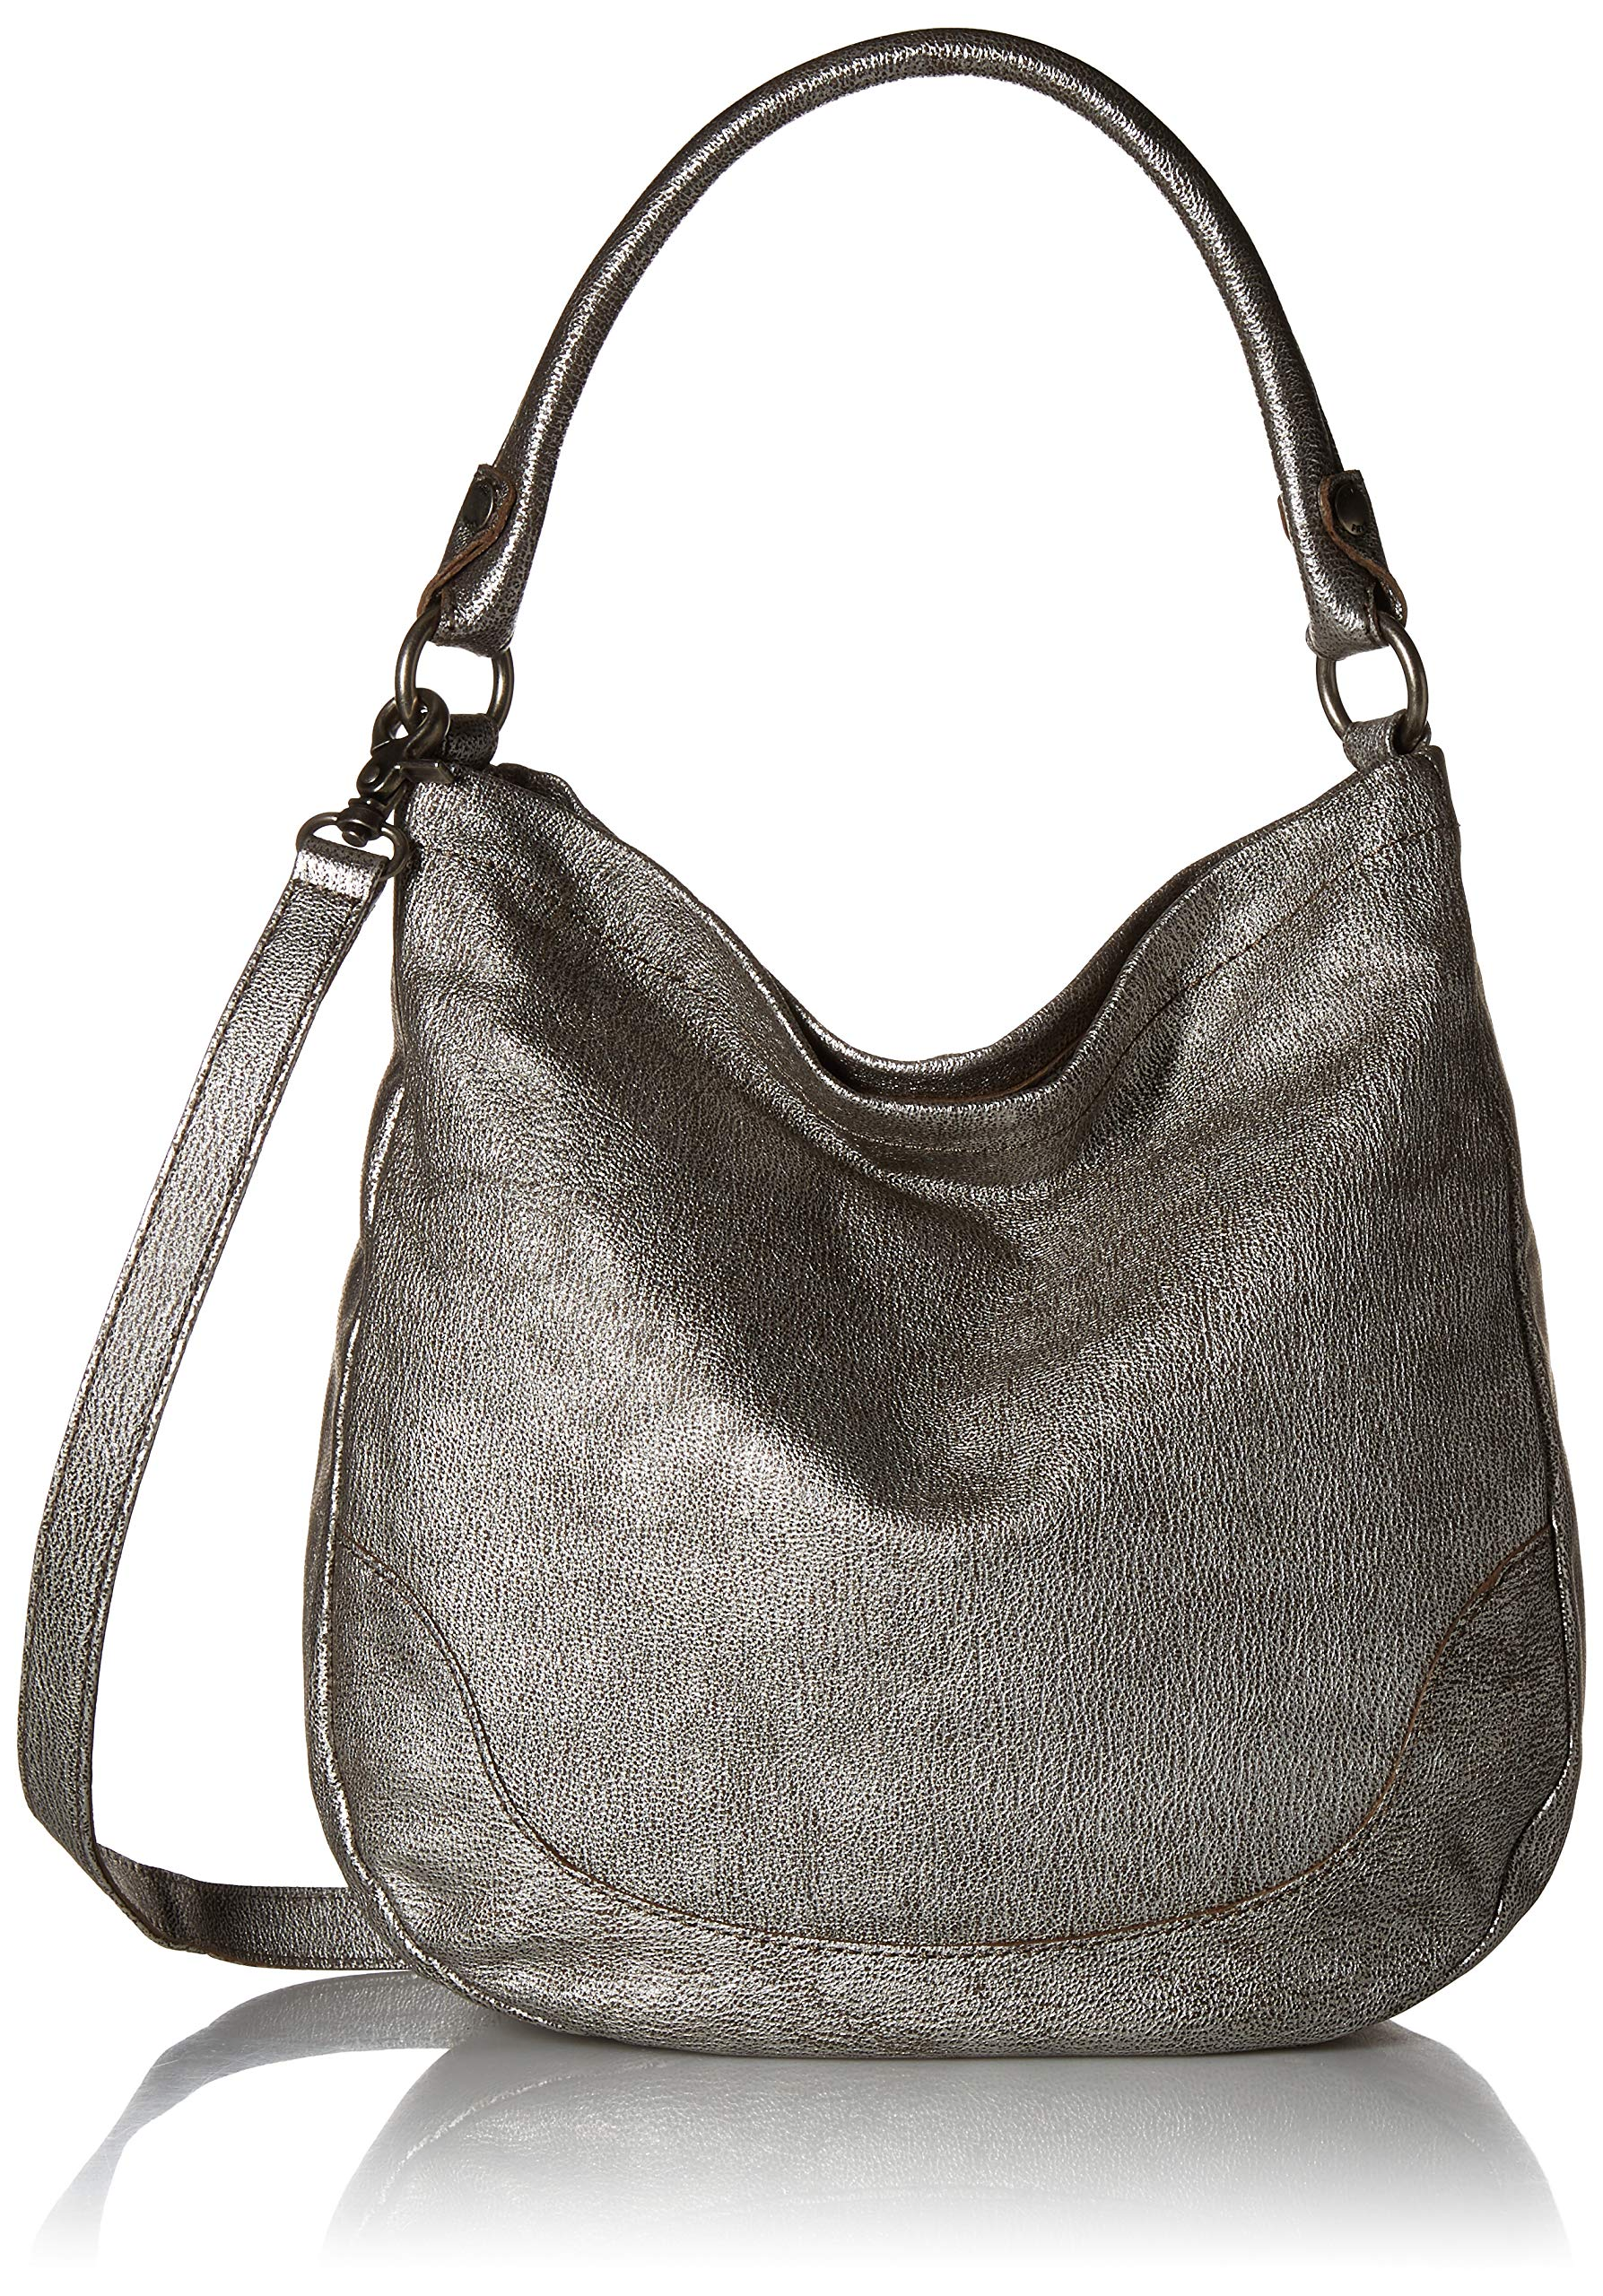 Frye Melissa Leather Hobo, Silver, One Size by FRYE